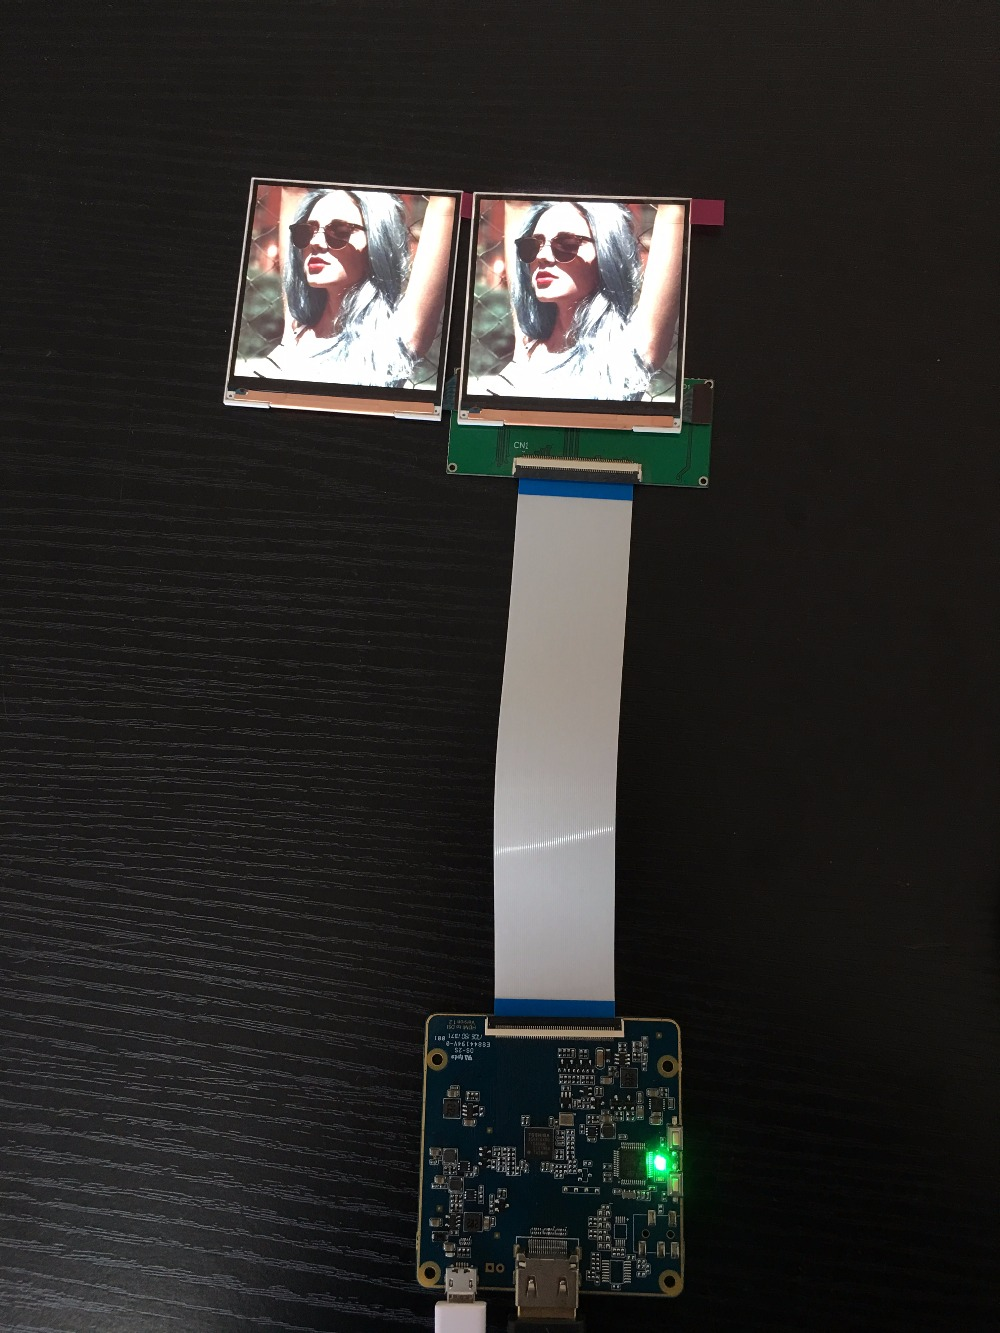 3.1 inch square LCD wide viewing angle 720X720 high resolution MIPI display with control board